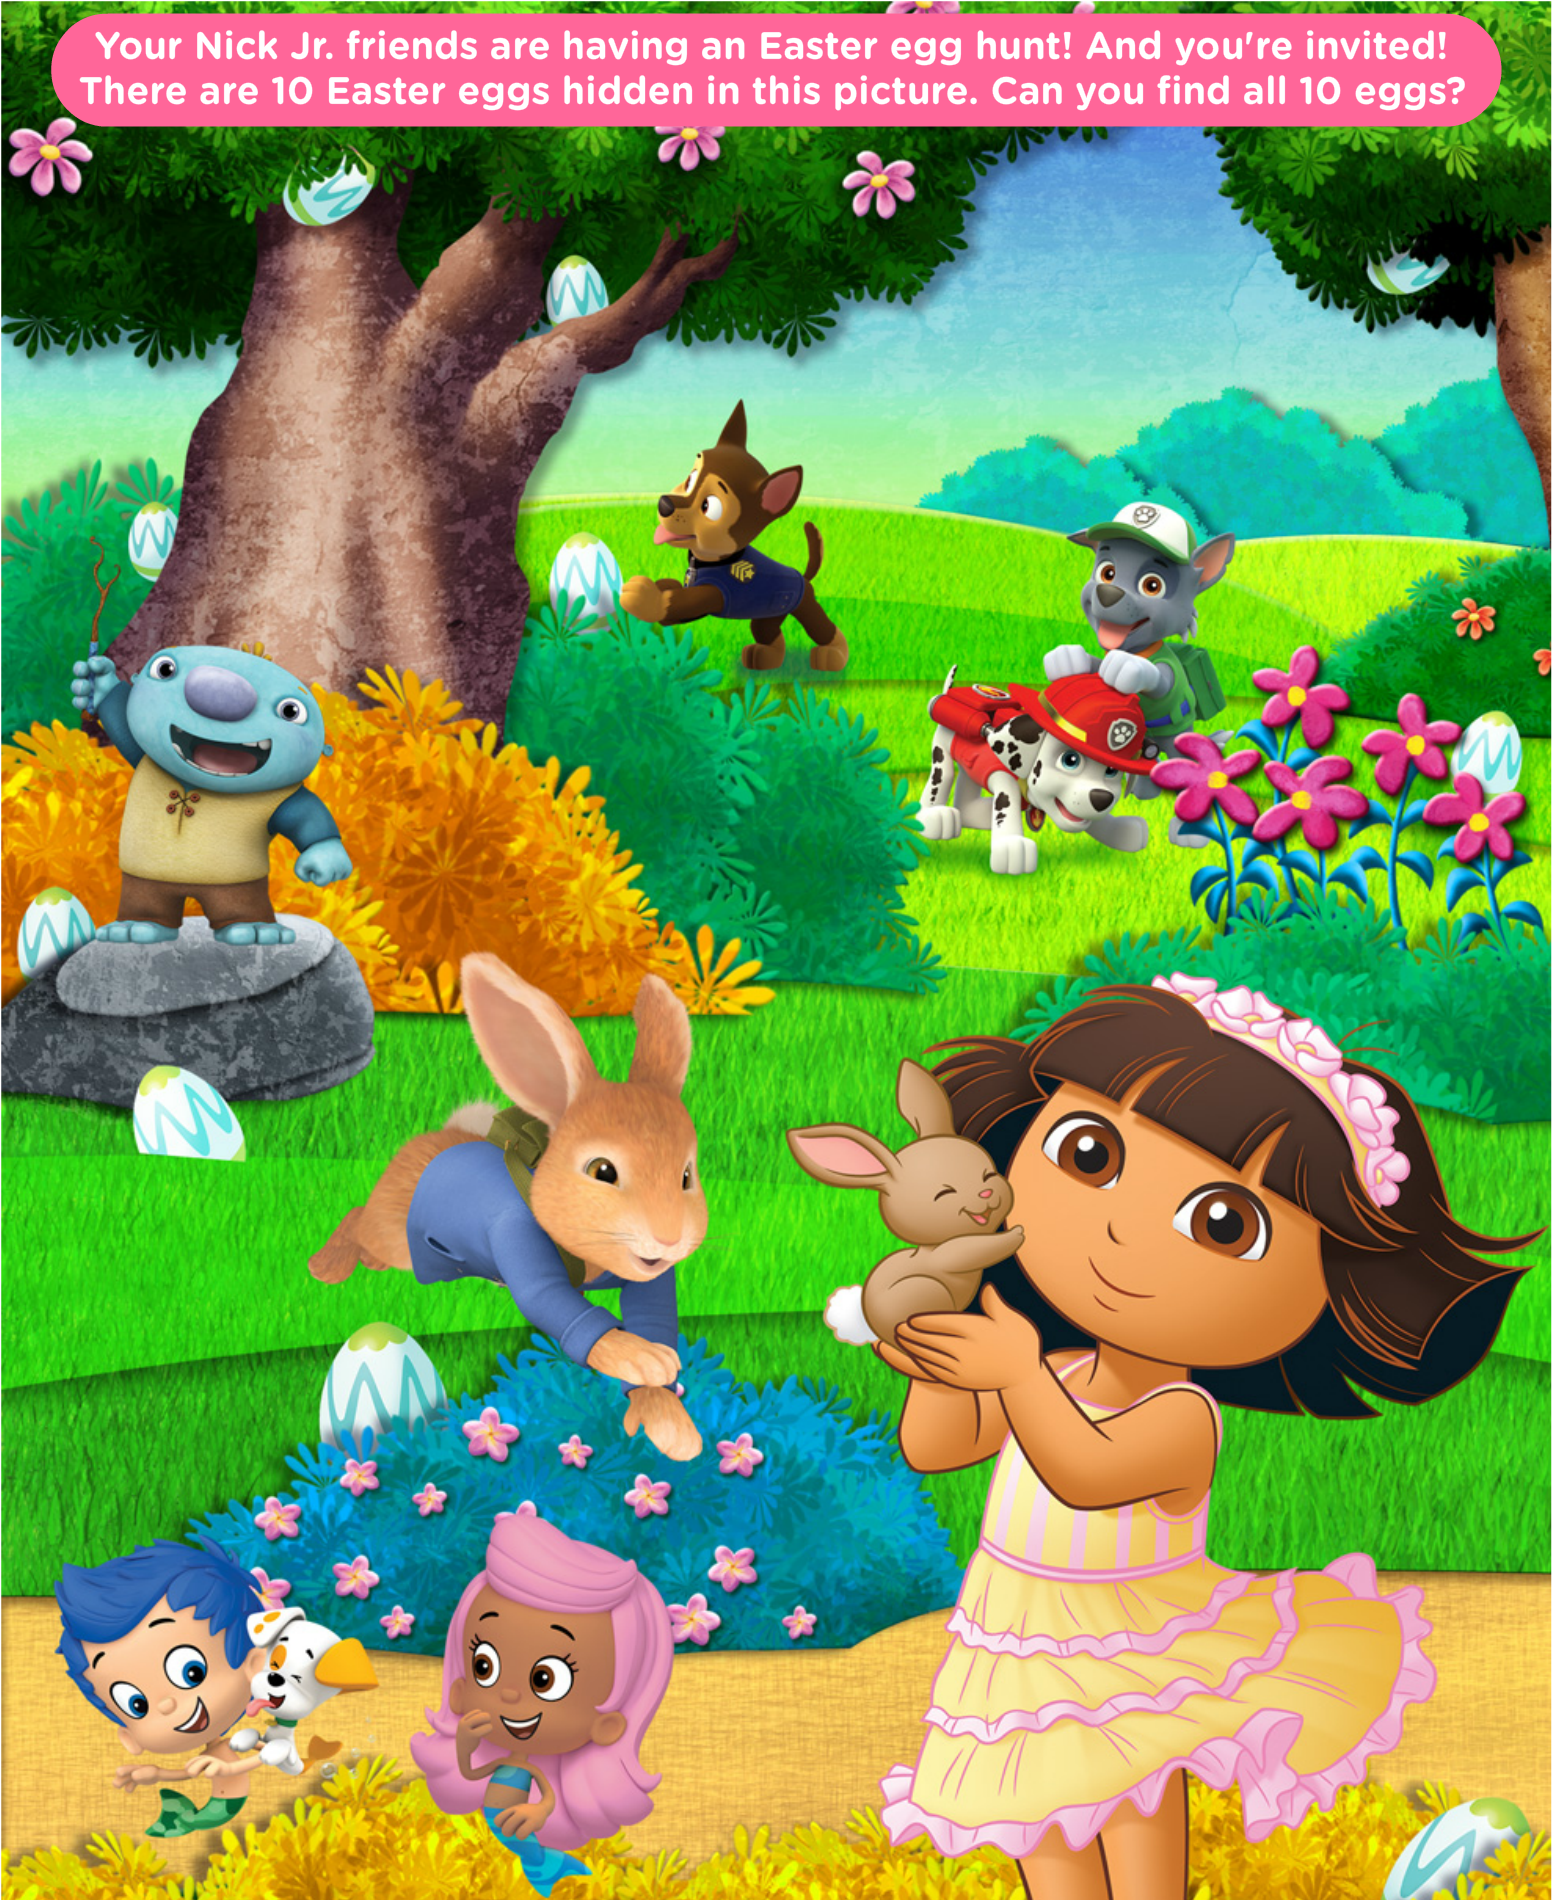 Go On An Egg Hunt With Nick Jr Friends